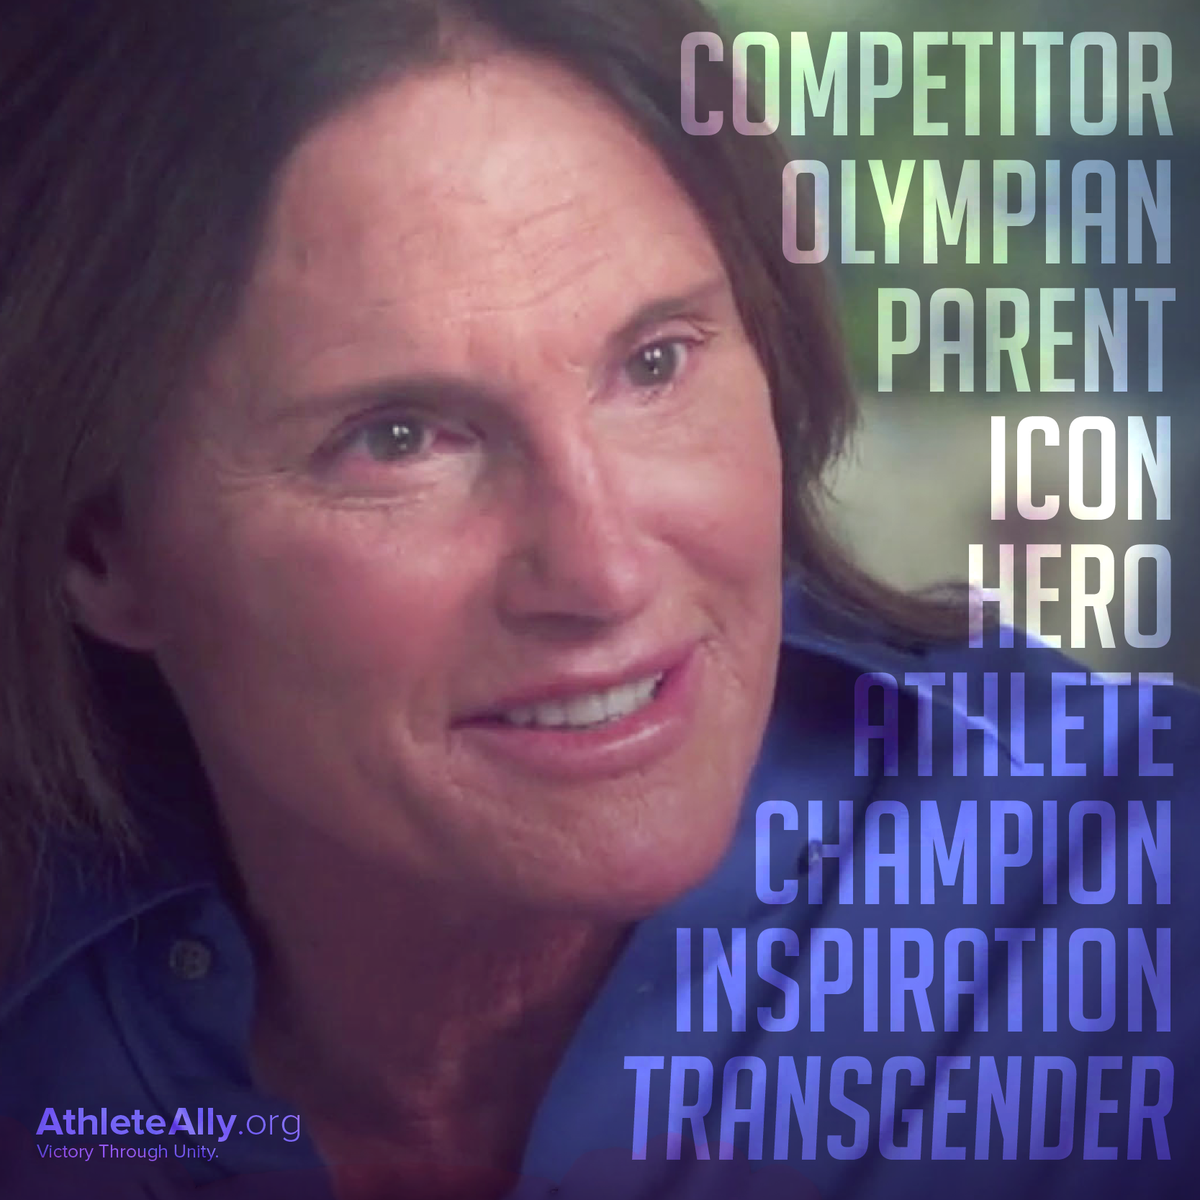 Once a Champion. Always a Champion. Congratulations @BruceJenner on being your true self! #BruceJennerABC http://t.co/wxRuaPRrEk